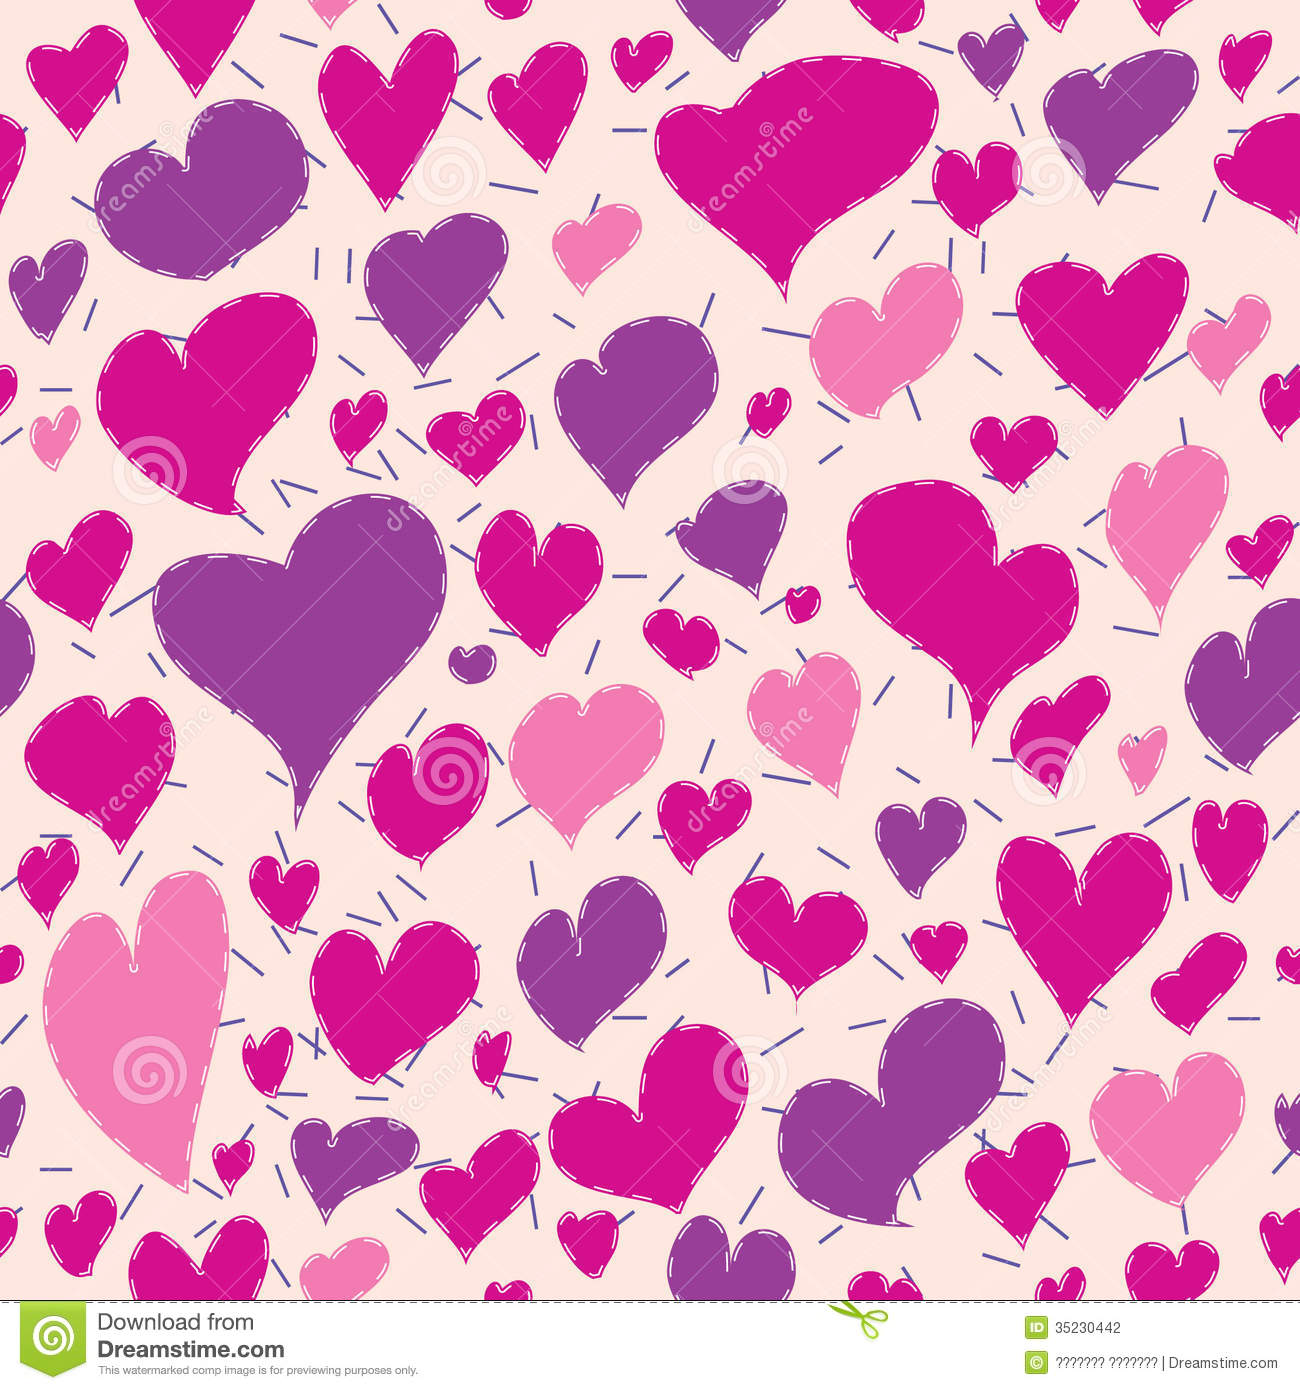 wallpapers purple hearts pink - photo #42